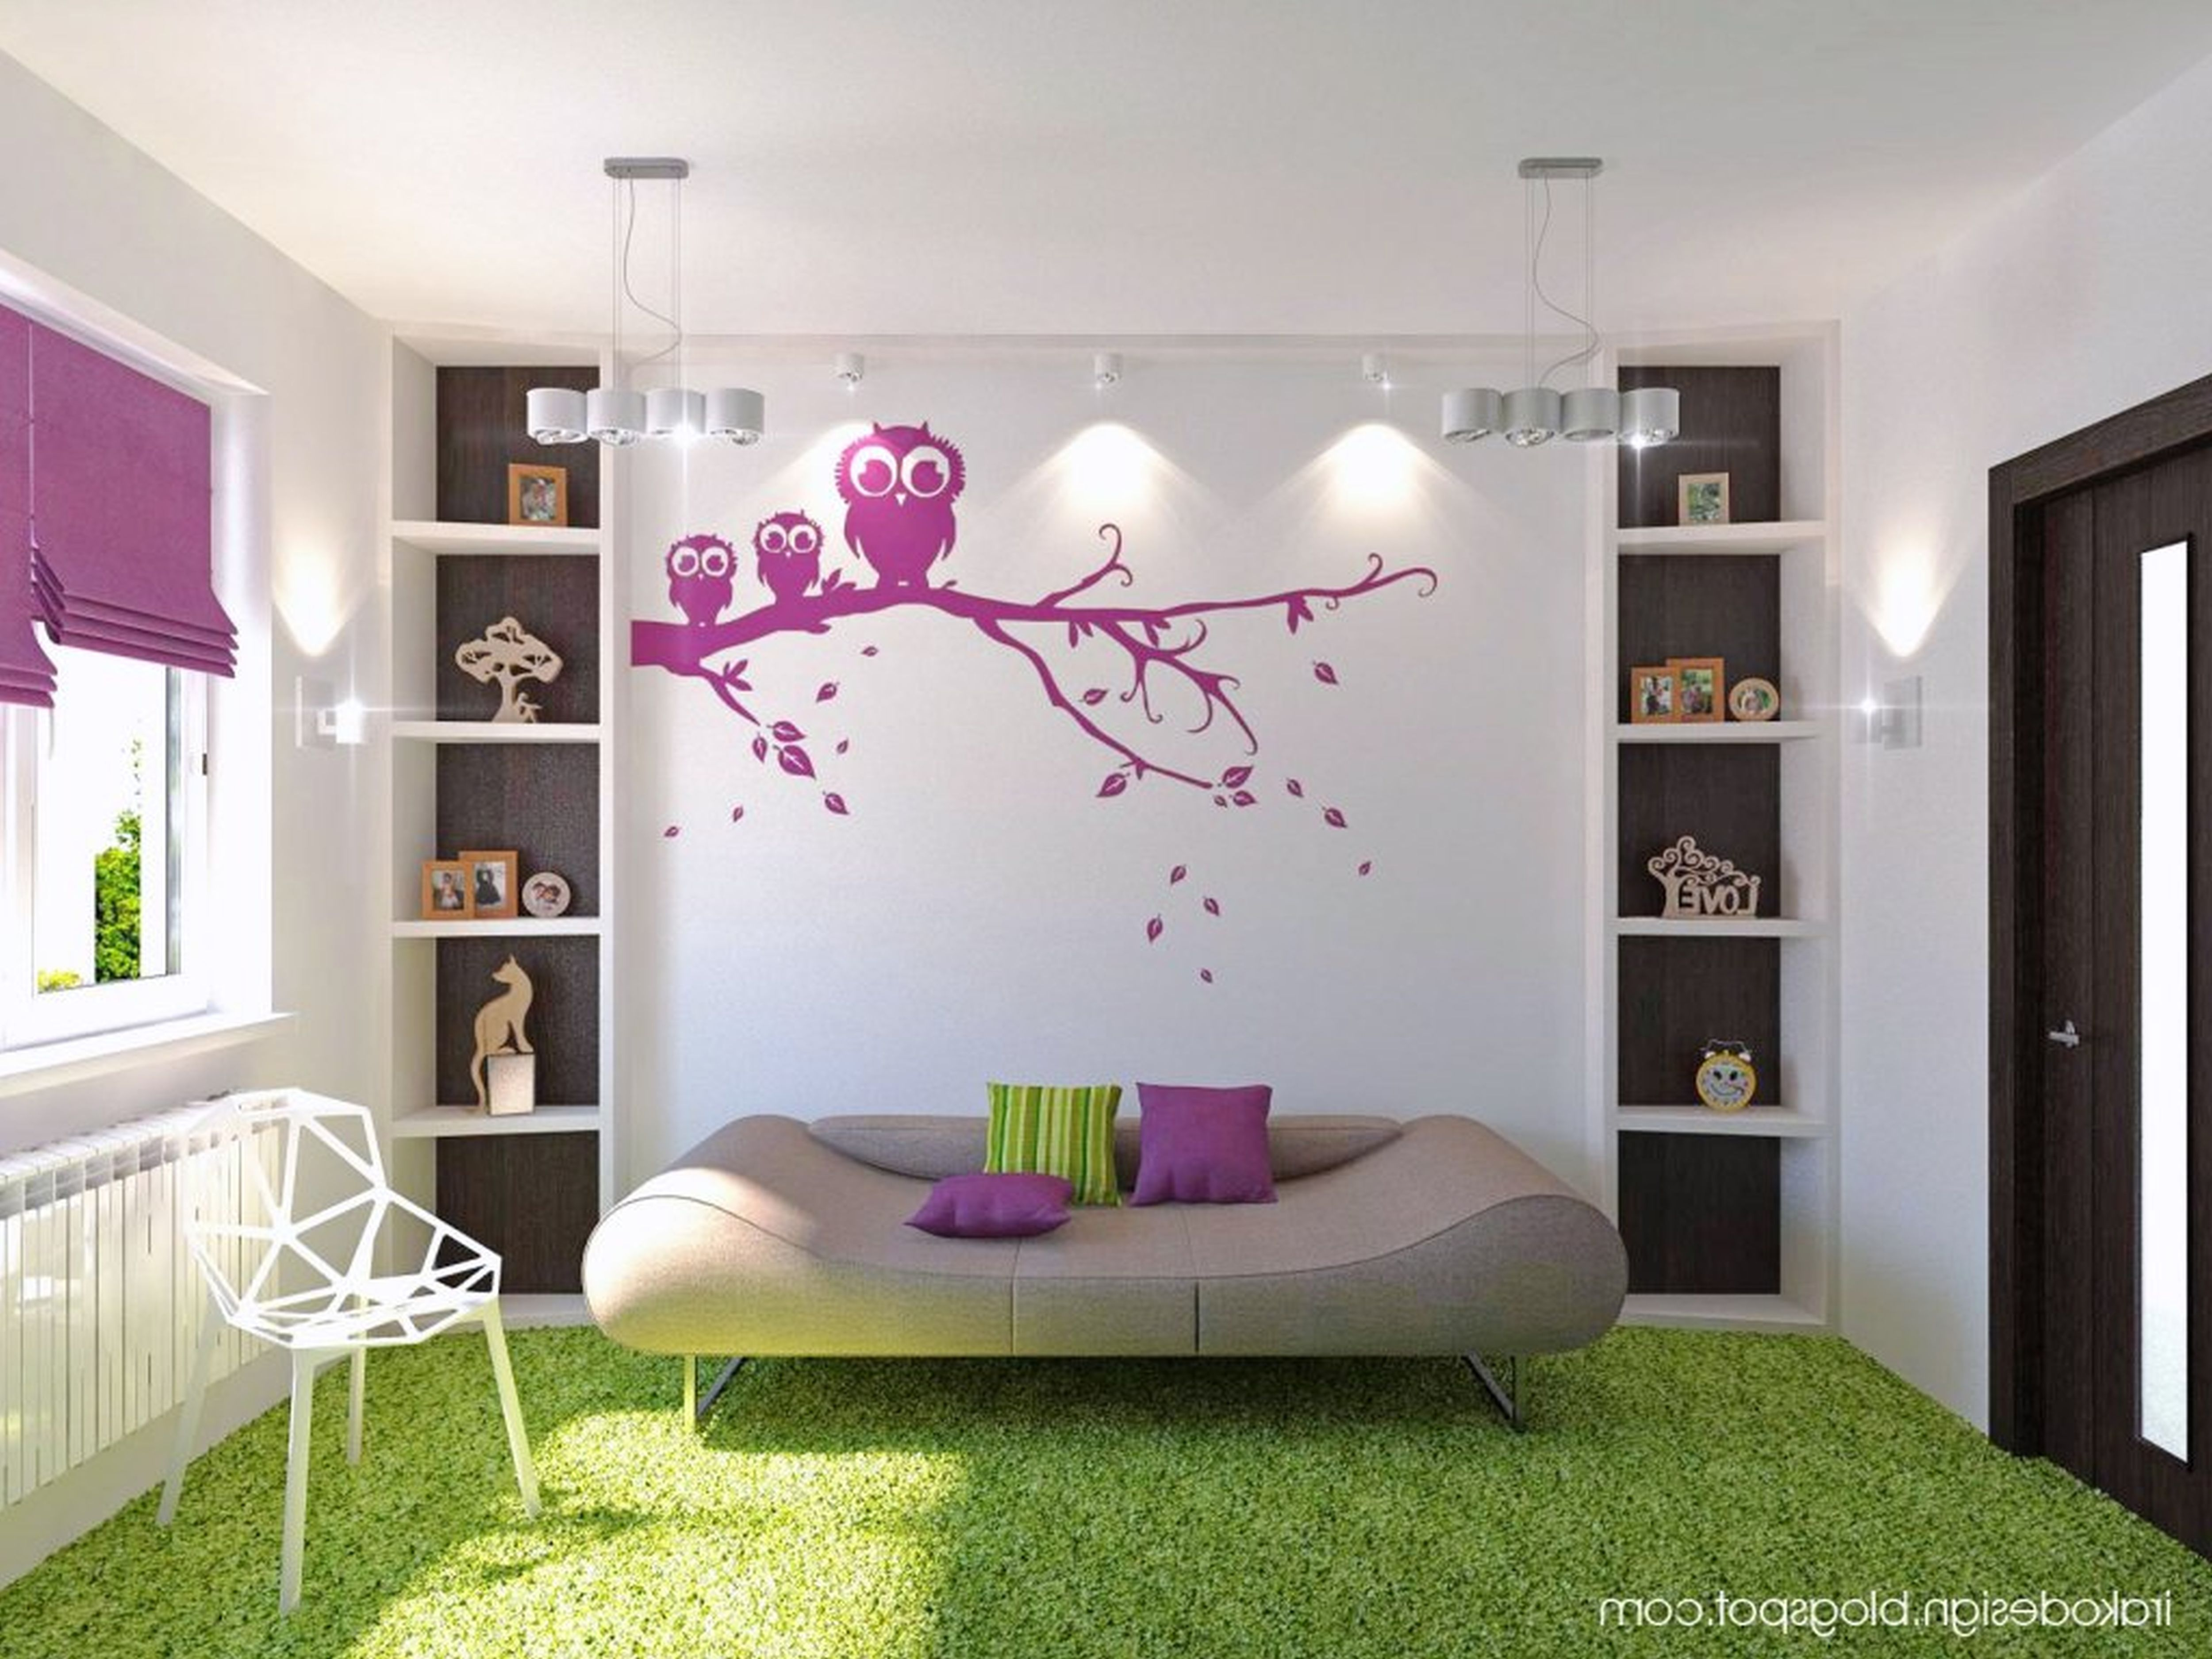 Best Images About Cool Rooms For Girls And Boys On Pinterest - Home design and decorating